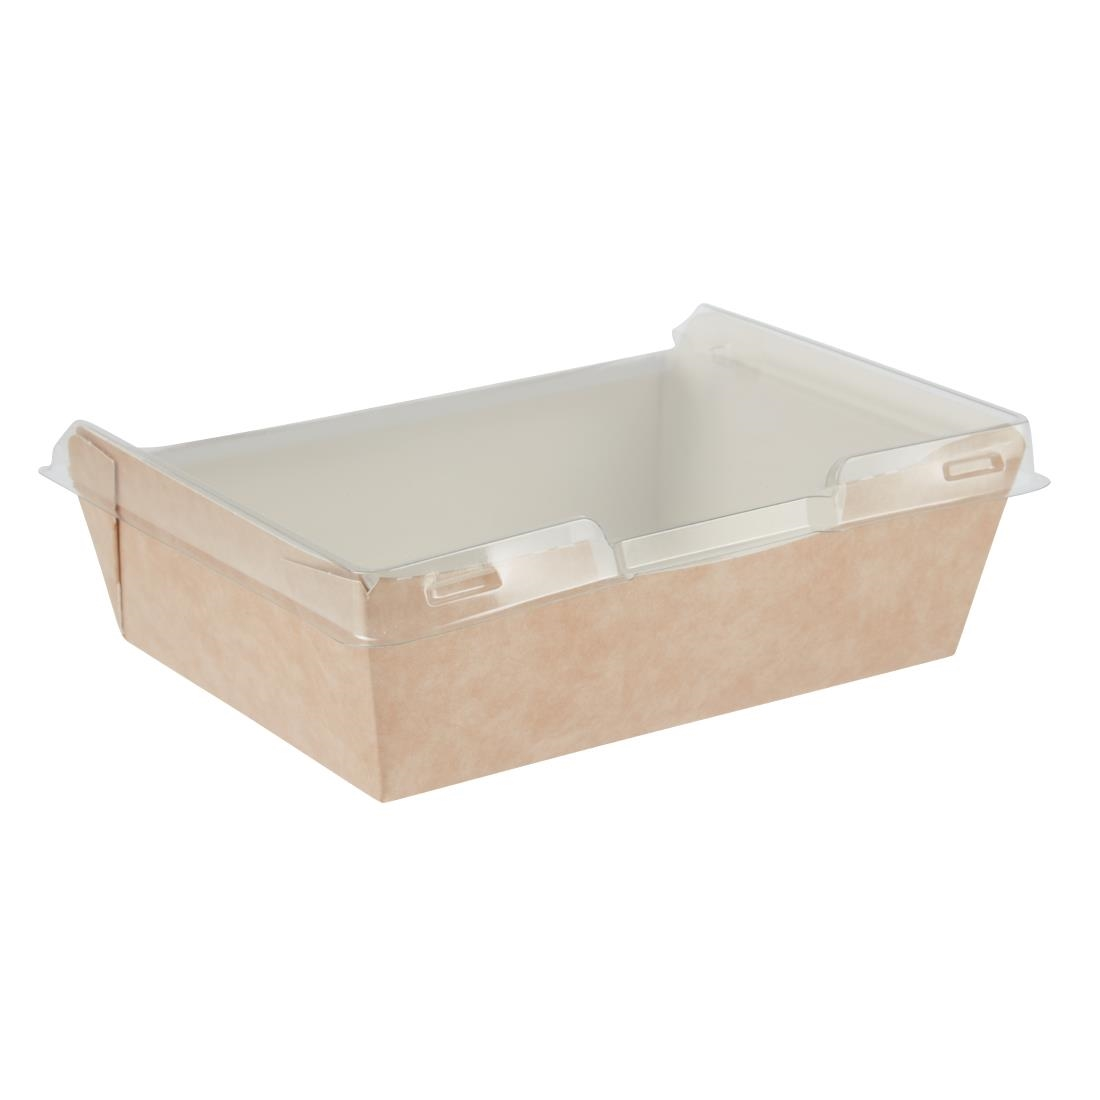 Image of Colpac Combione Recyclable Kraft Food Trays With Lid 910ml / 32oz (Pack of 200) Pack of 200